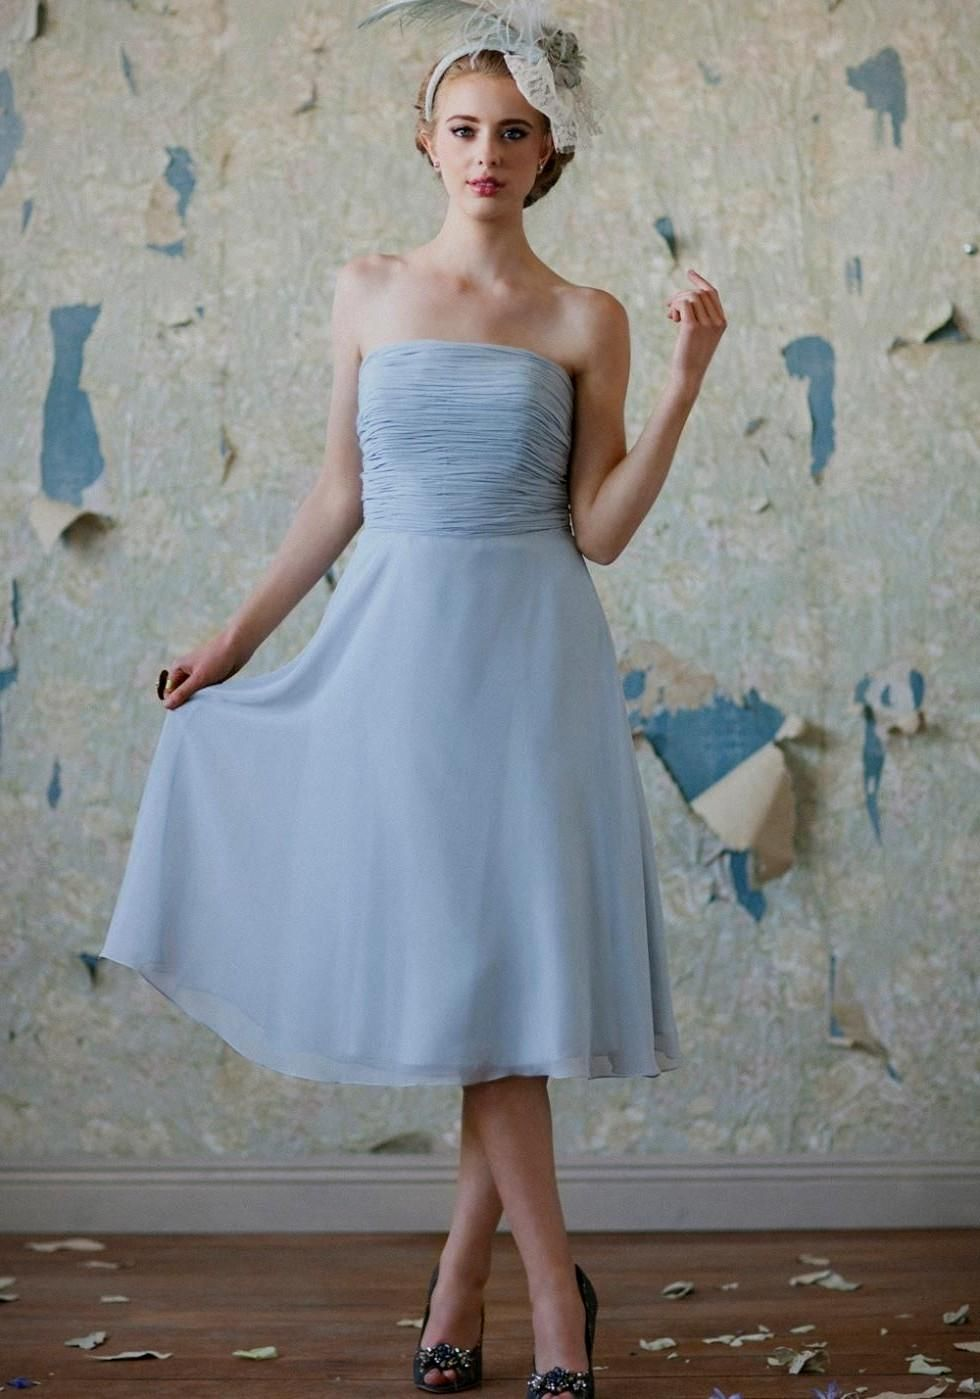 Inspirational Powder Blue Wedding Dress Check More At Http://svesty.com/